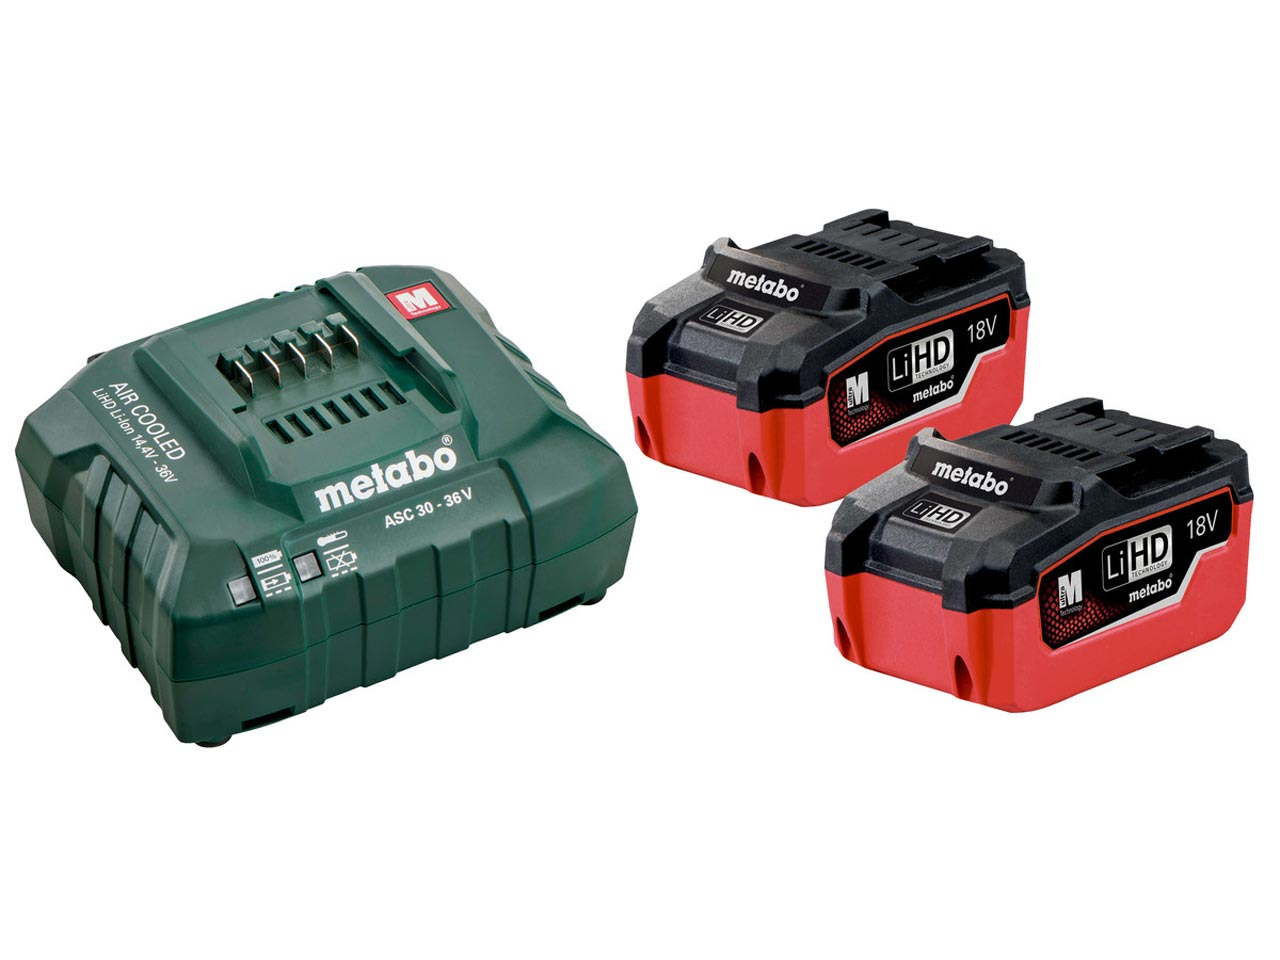 metabo 685122000 18v 2x5 5ah lihd battery starter kit ebay. Black Bedroom Furniture Sets. Home Design Ideas